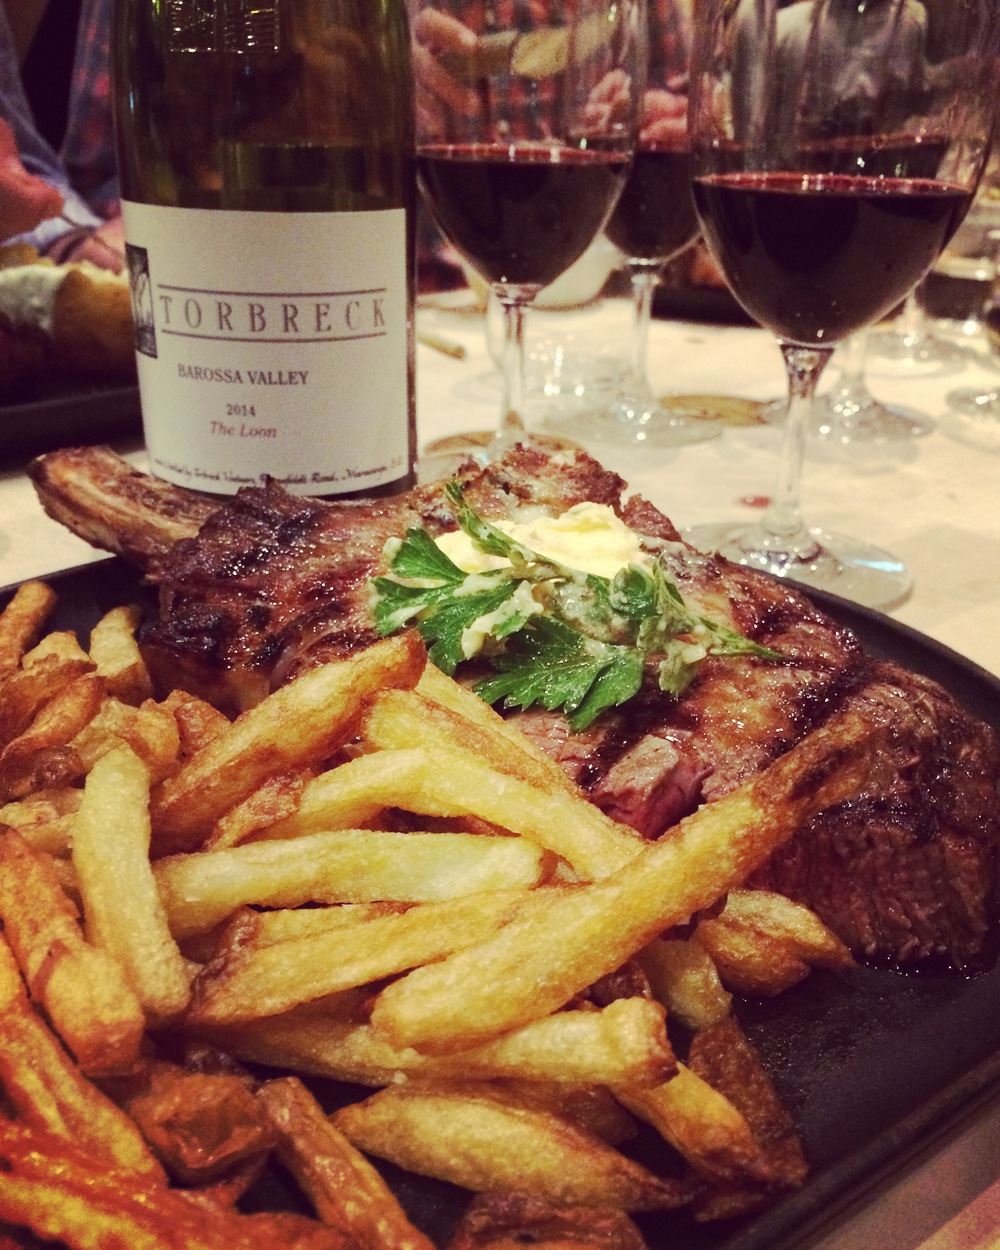 What other ending to this day than steak washed down with Torbreck 'The Loon' 2014 Shiraz eaten in good company at  A Hereford Beefstouw  in Adelaide?! This Danish themed steakhouse has its own farm full of free-range pasture-fed cattle. The wine is Shiraz co-fermented on Roussanne skins which creates an intense but balanced red full of juicy dark fruit with a hint of dark chocolate.